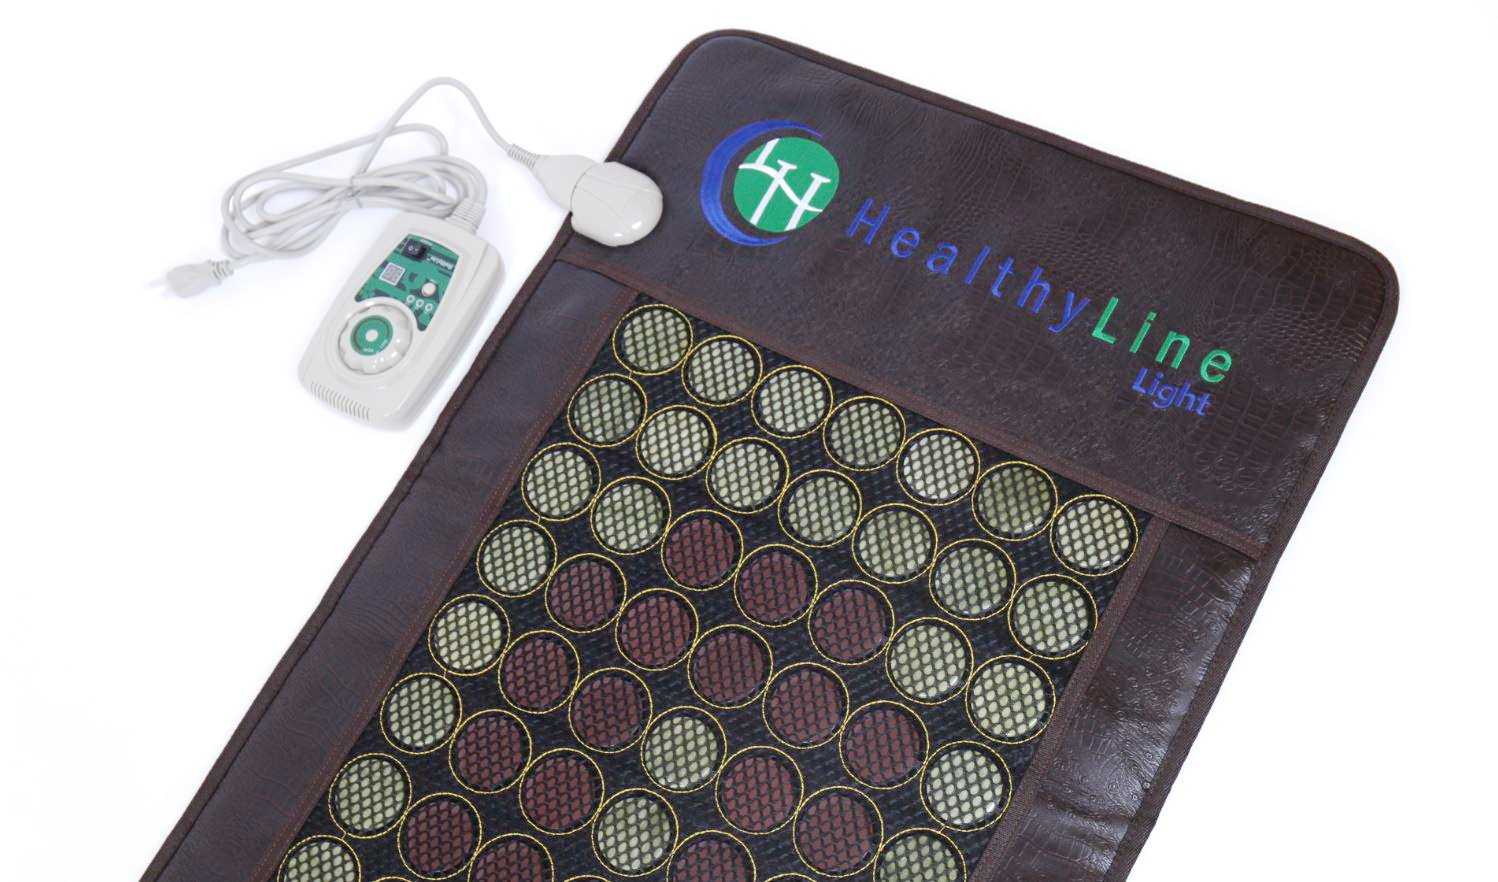 HealthyLine Far Infrared Heating Mat 72''x24'' Relieves Sore Muscles, Joints, Arthritis Natural Jade & Tourmaline with Negative Ions InfraMat Pro Most Flexible Model-Easy to roll-up(Light & Firm) by HealthyLine (Image #2)